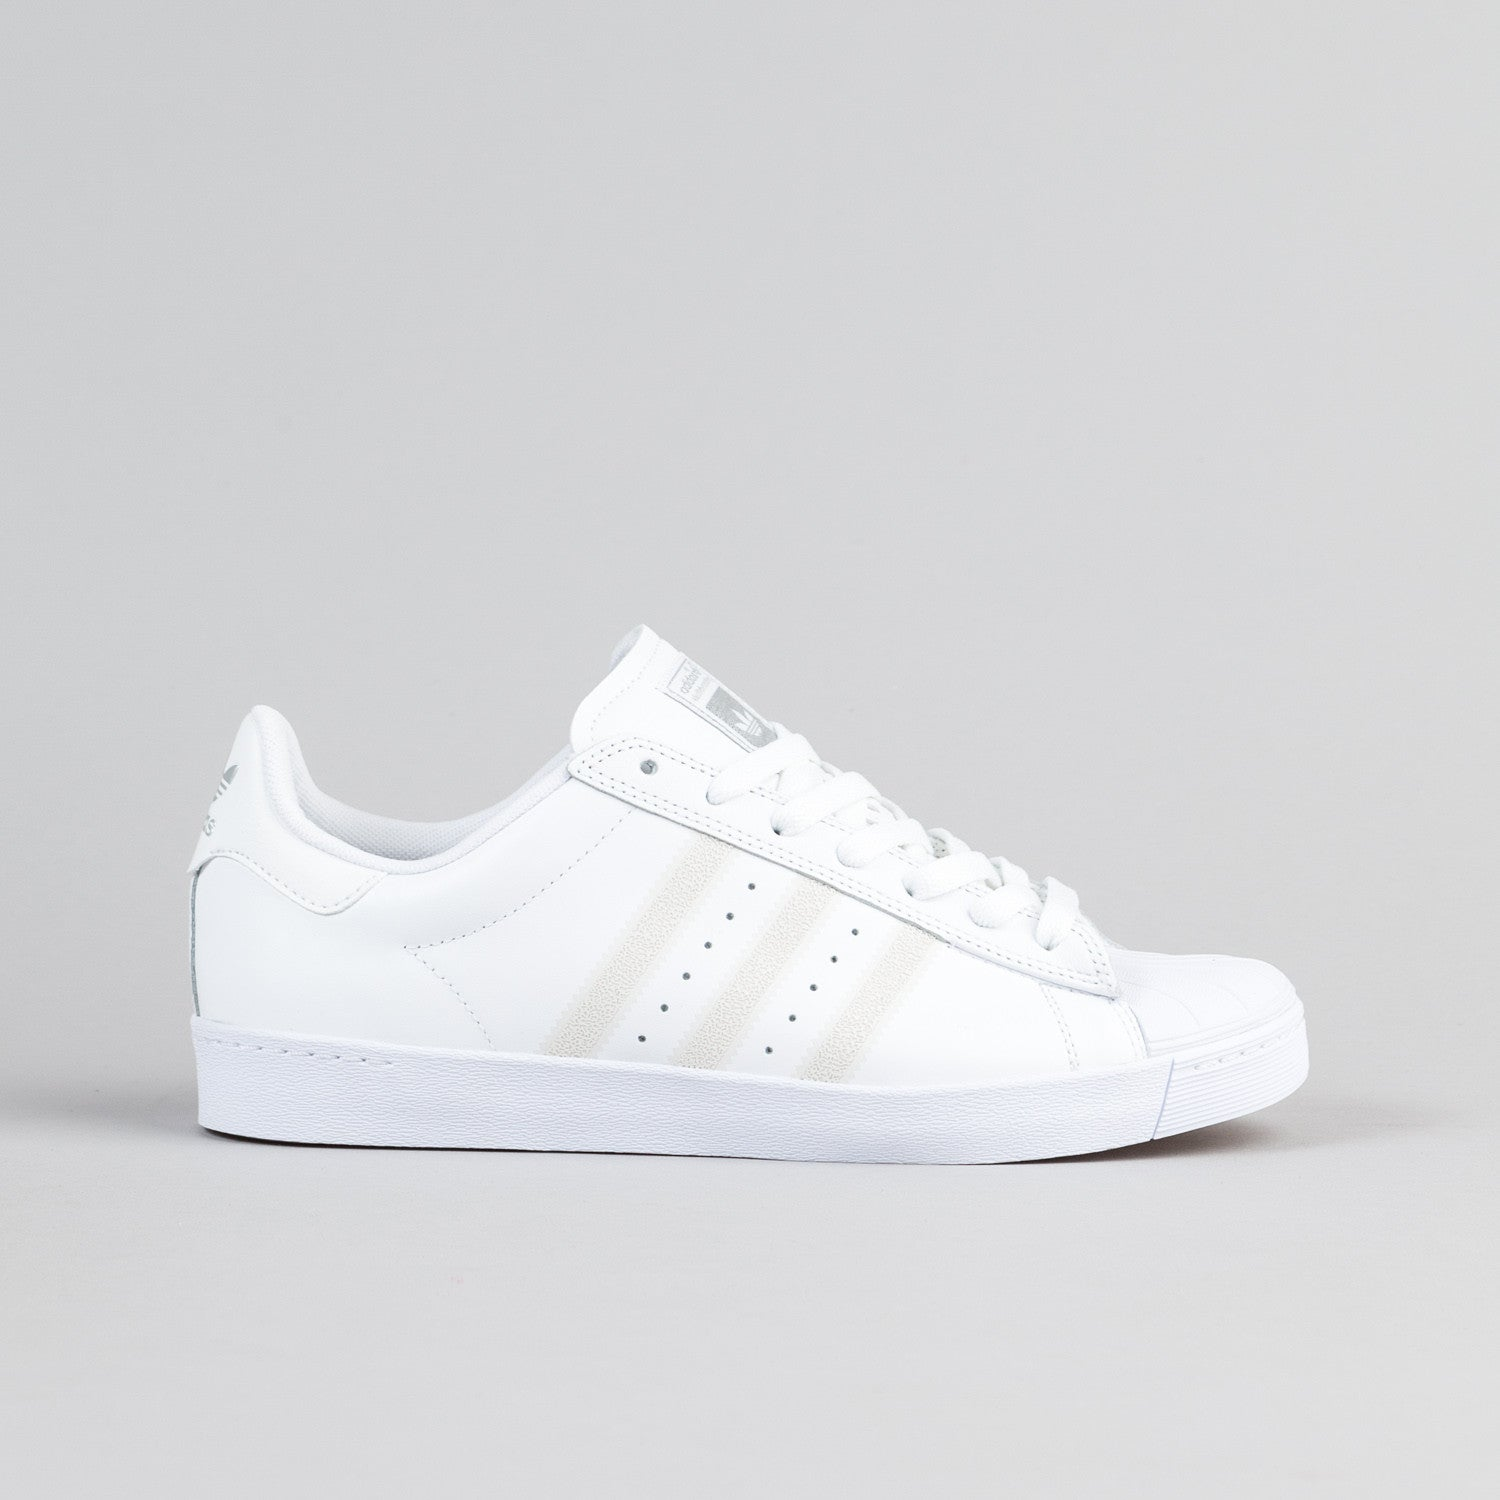 Cheap Adidas Superstar Original Fashion Sneaker, White/Navy Neiman